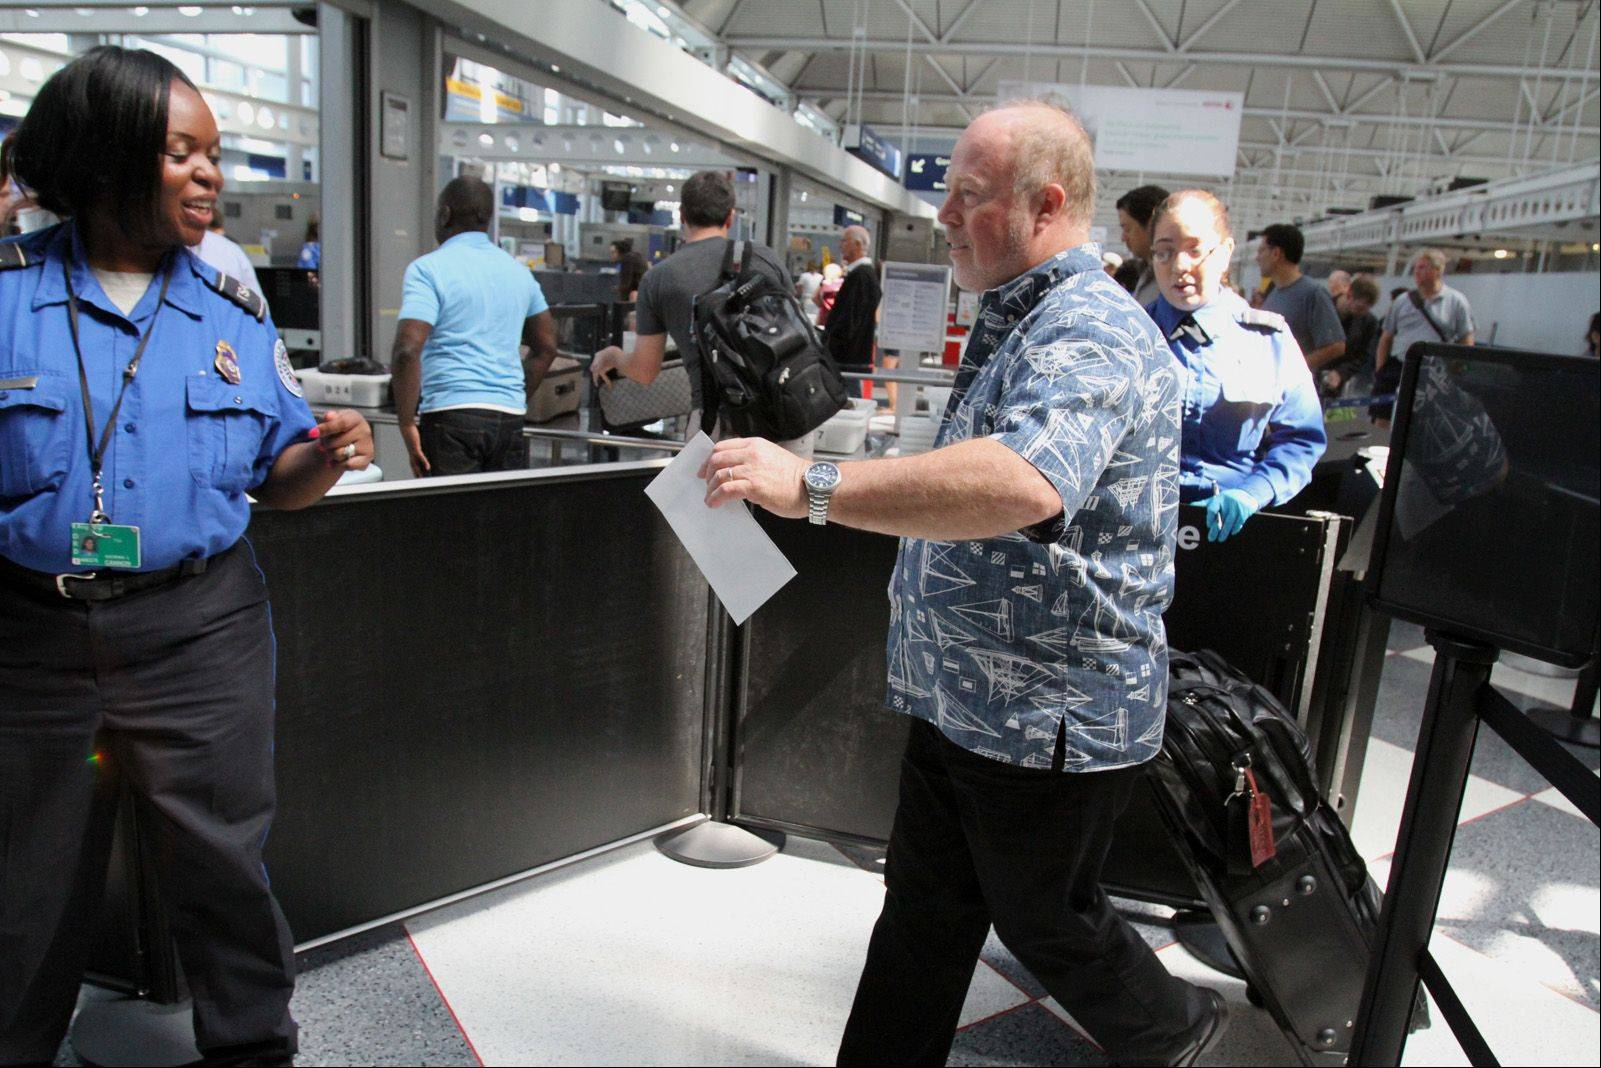 Laurent Perkin of San Diego goes through a new streamlined security checkpoint for preapproved travelers at the United Terminal at O'Hare International Airport in Chicago on Wednesday. Perkin was traveling home after business in Chicago.